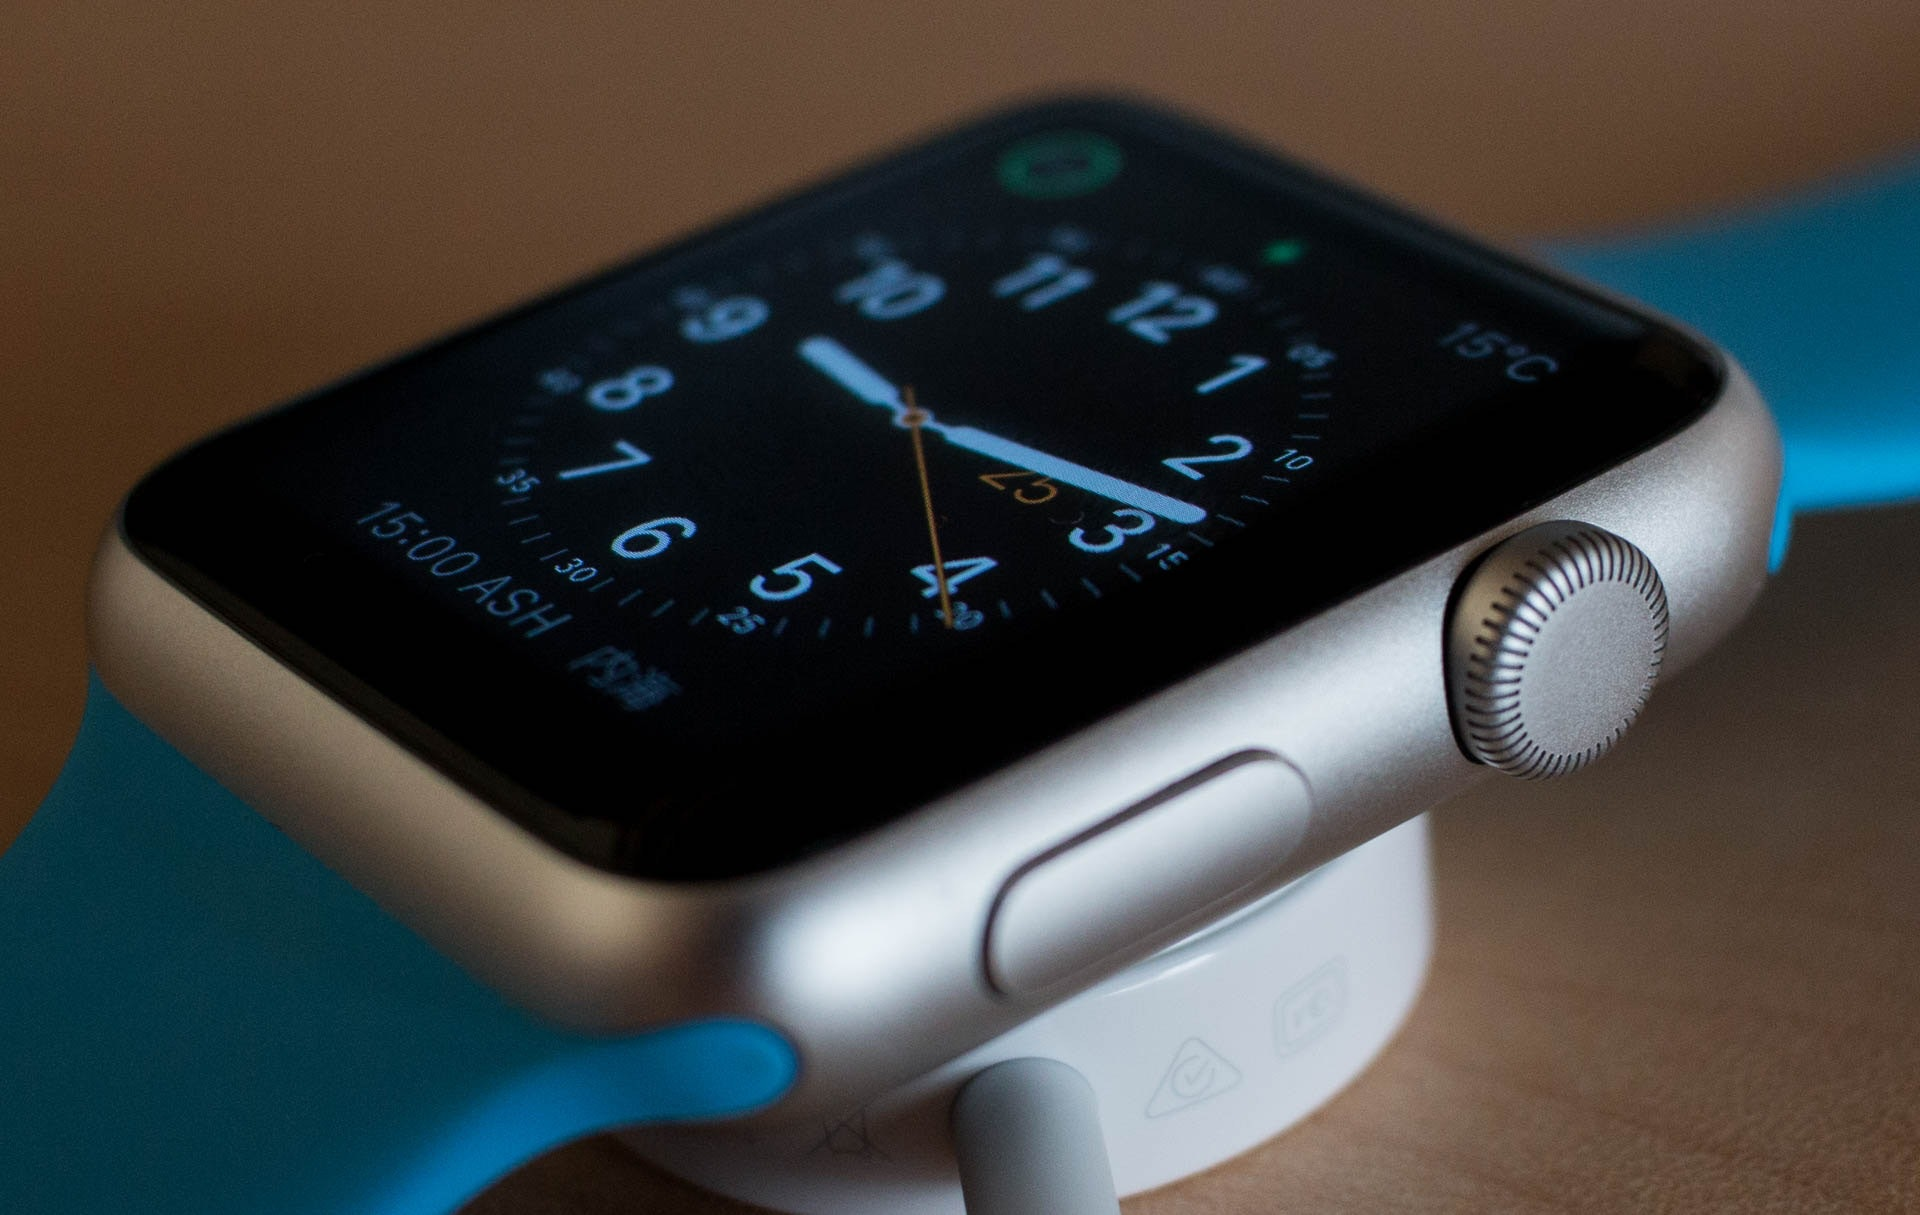 apple-apple-watch-equipment-277406.jpg